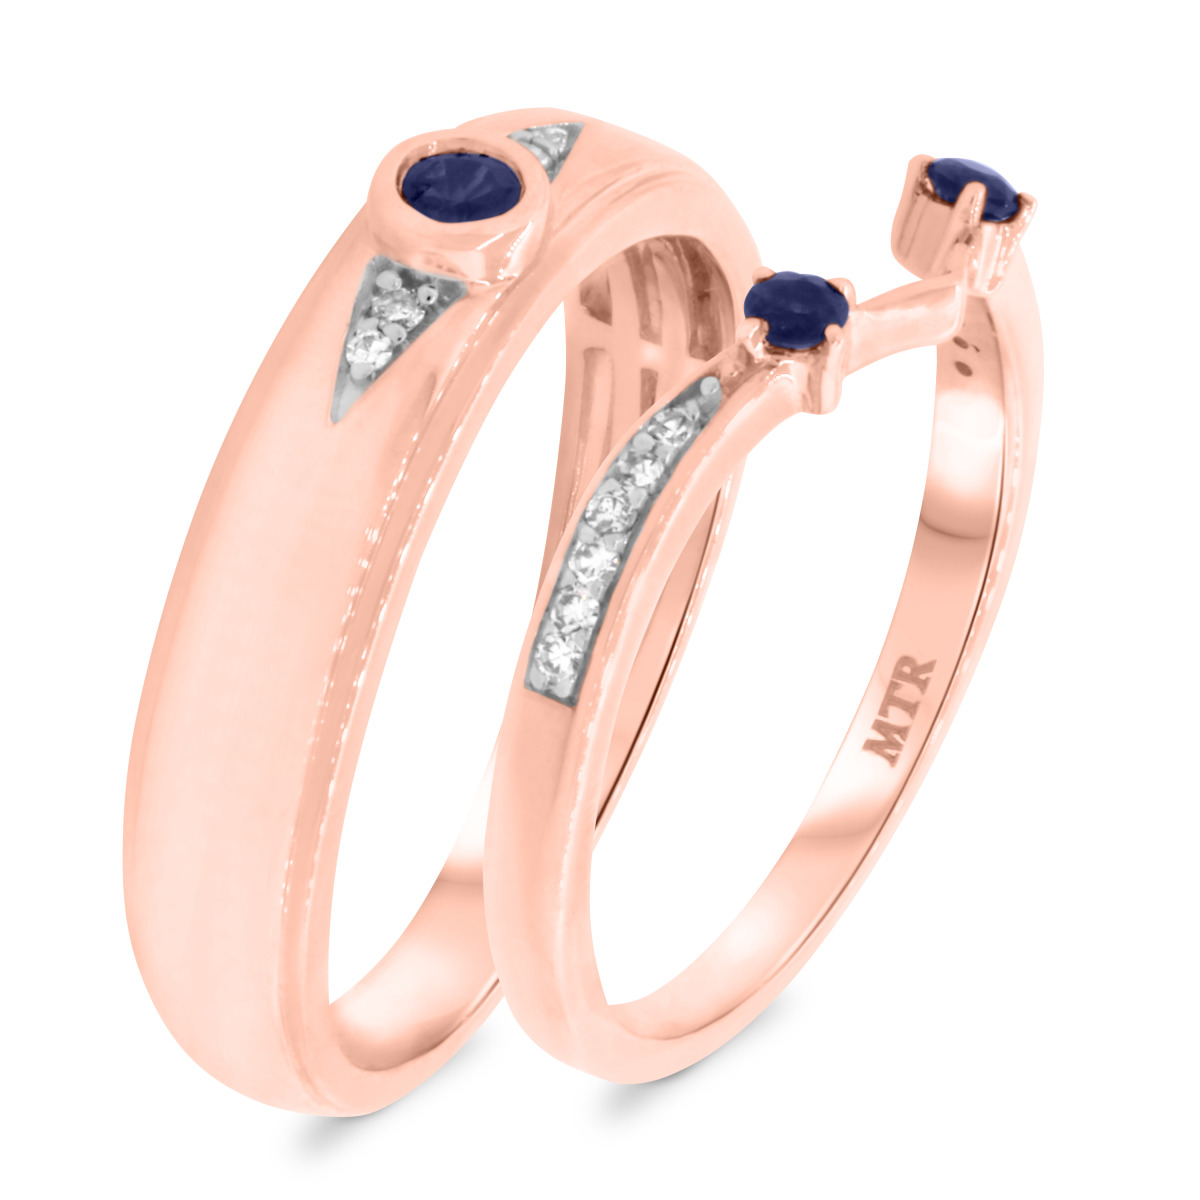 1/3 CT. T.W. Sapphire Matching Wedding Band Set 10K Rose Gold